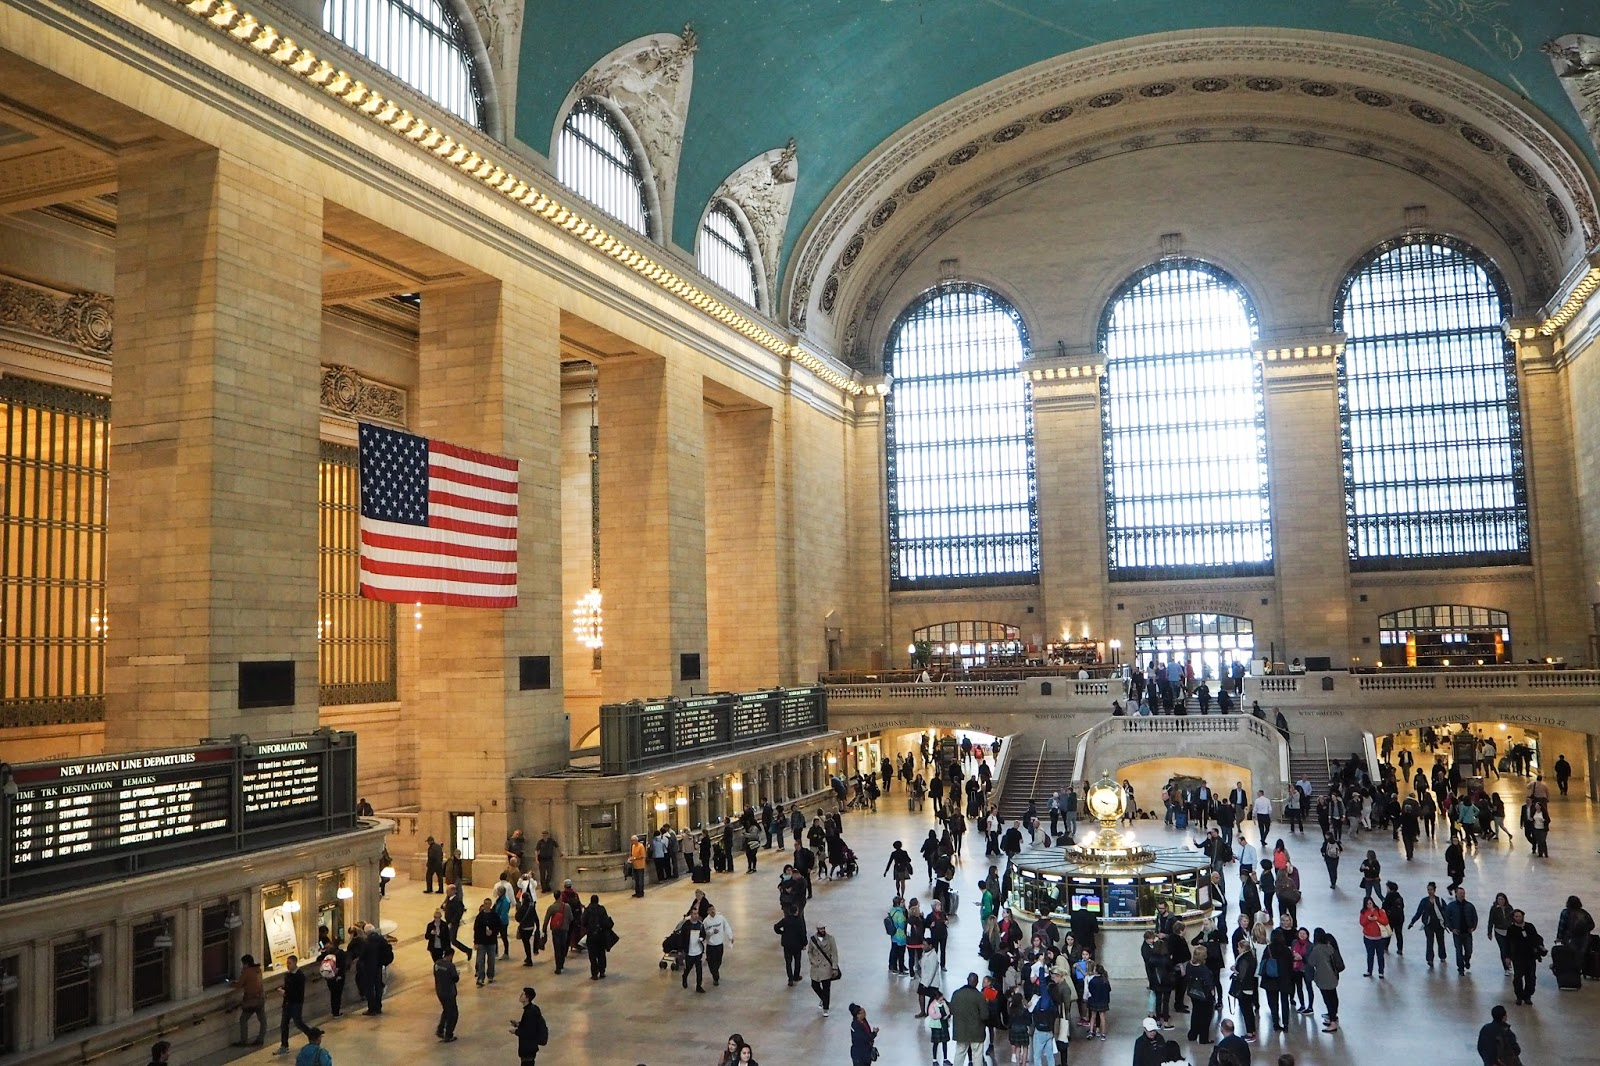 Inside of Grand Central Station